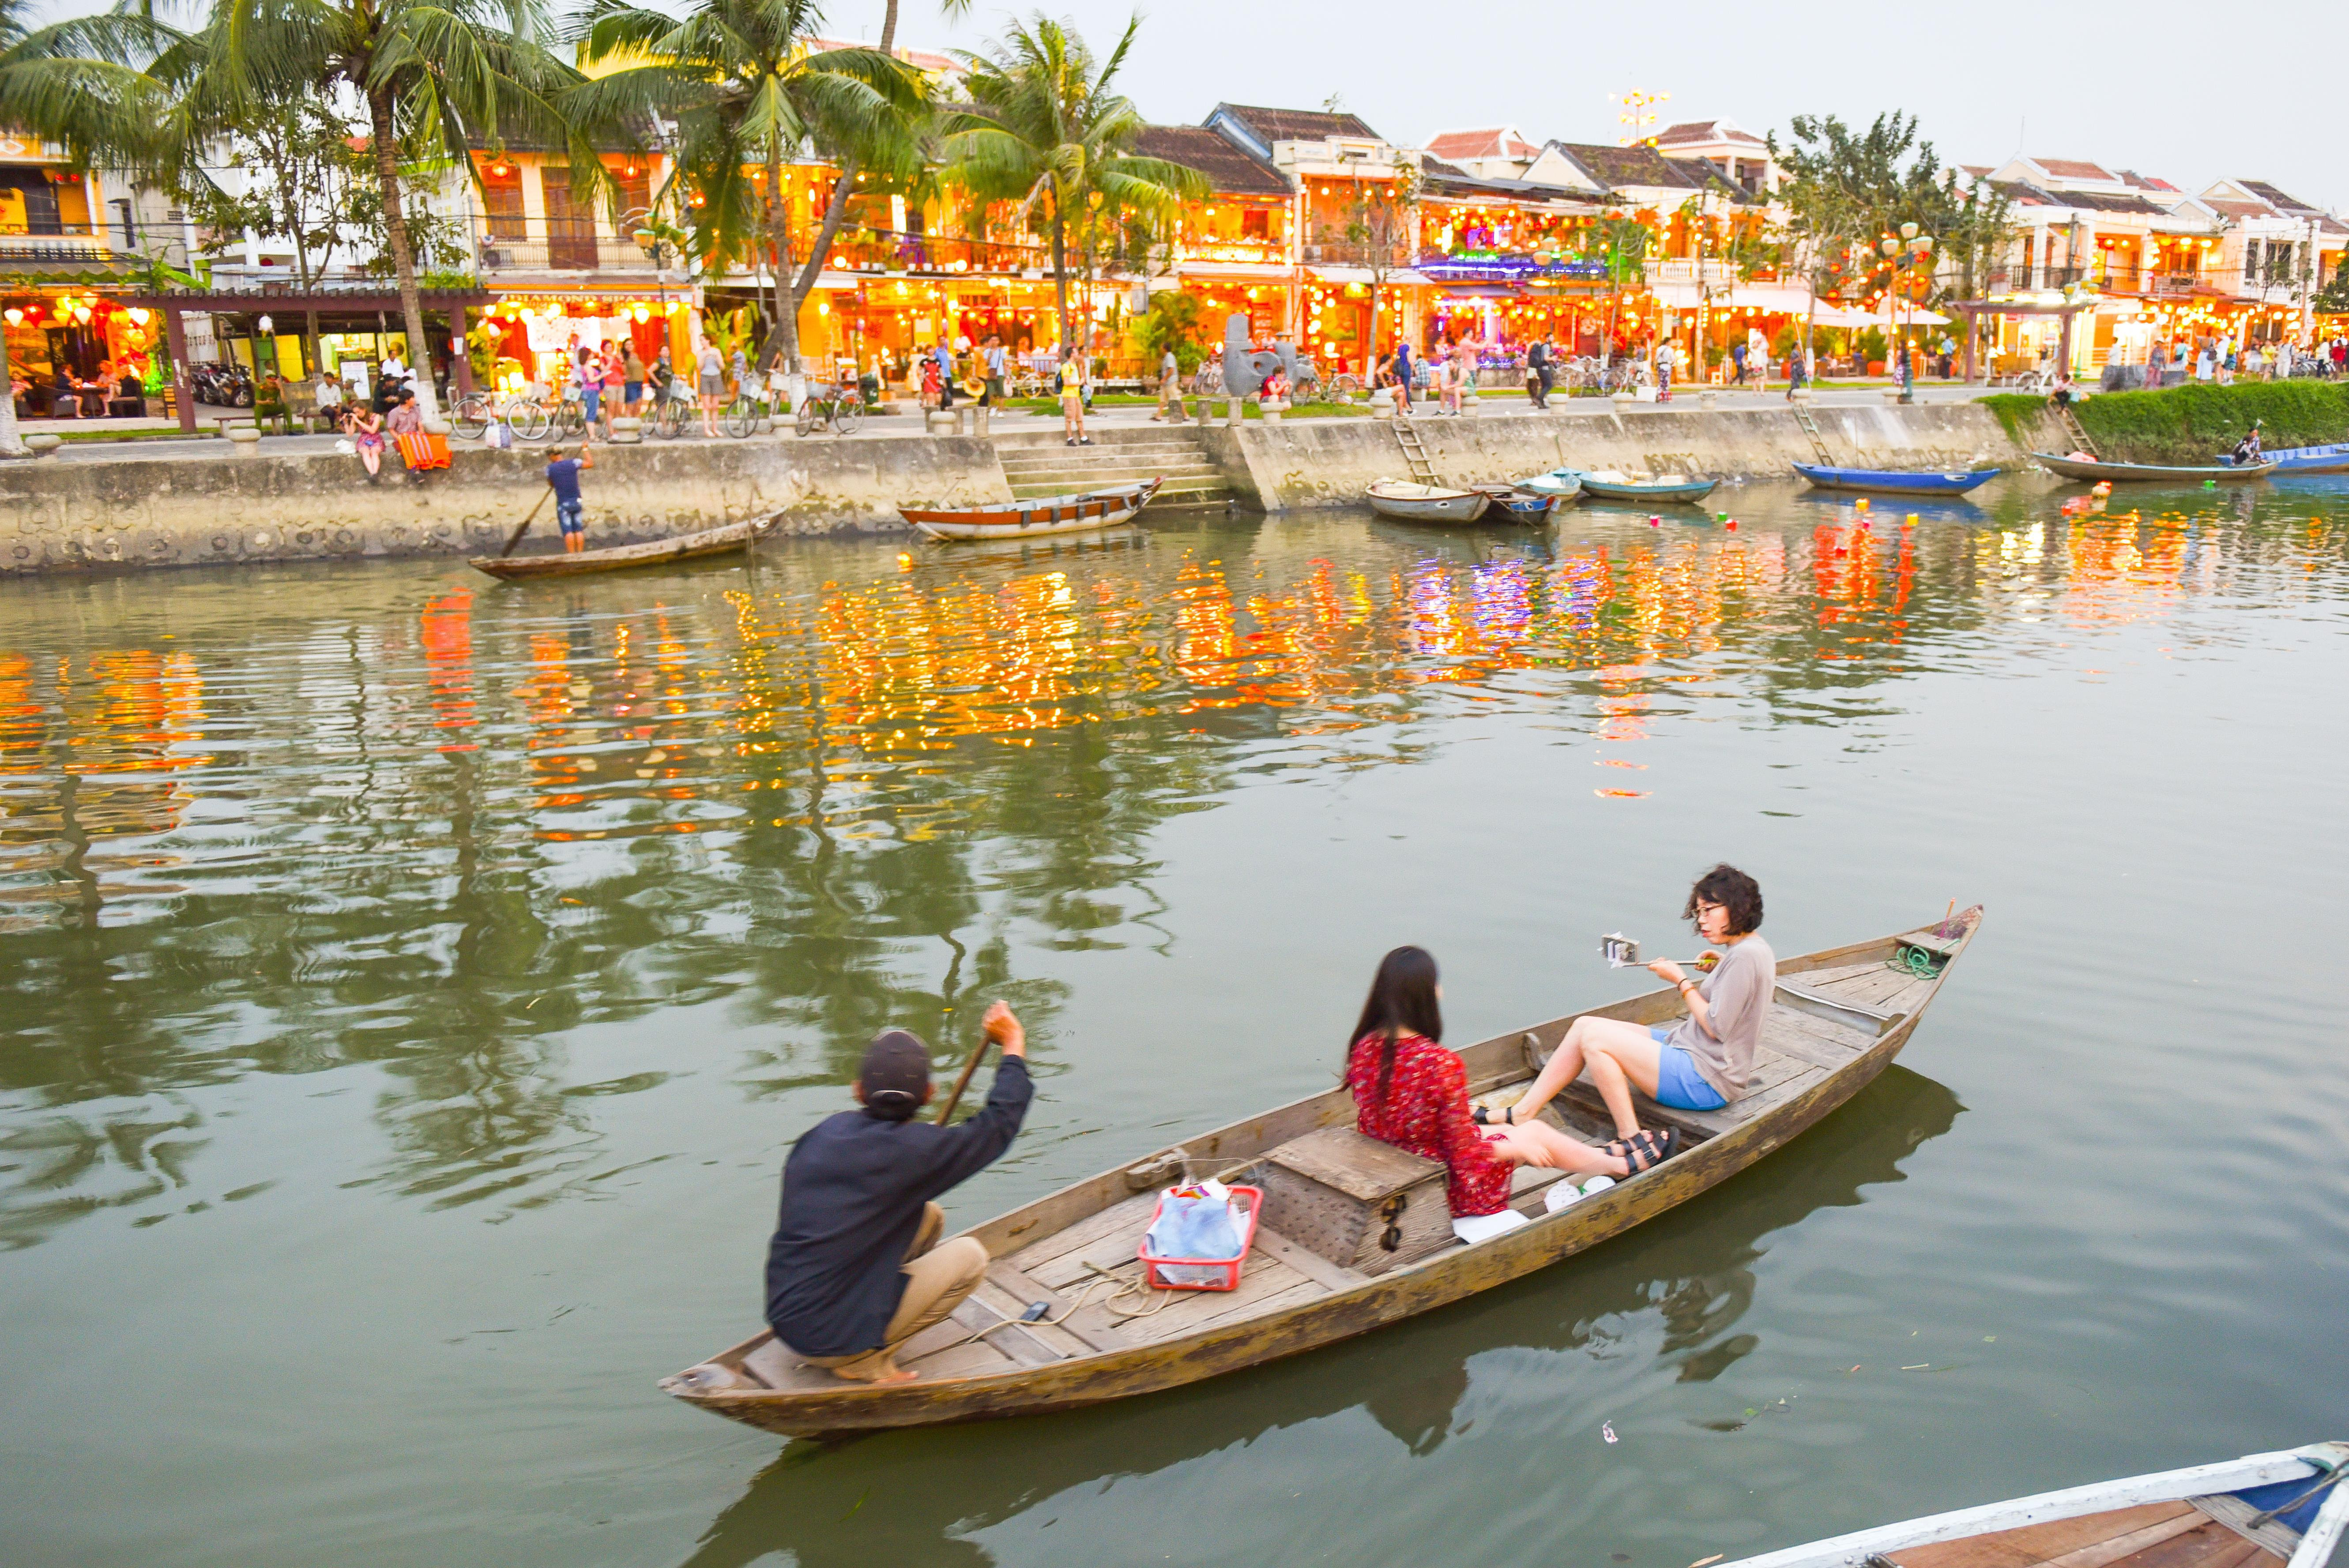 How to Spend 2 Days in Hoi An